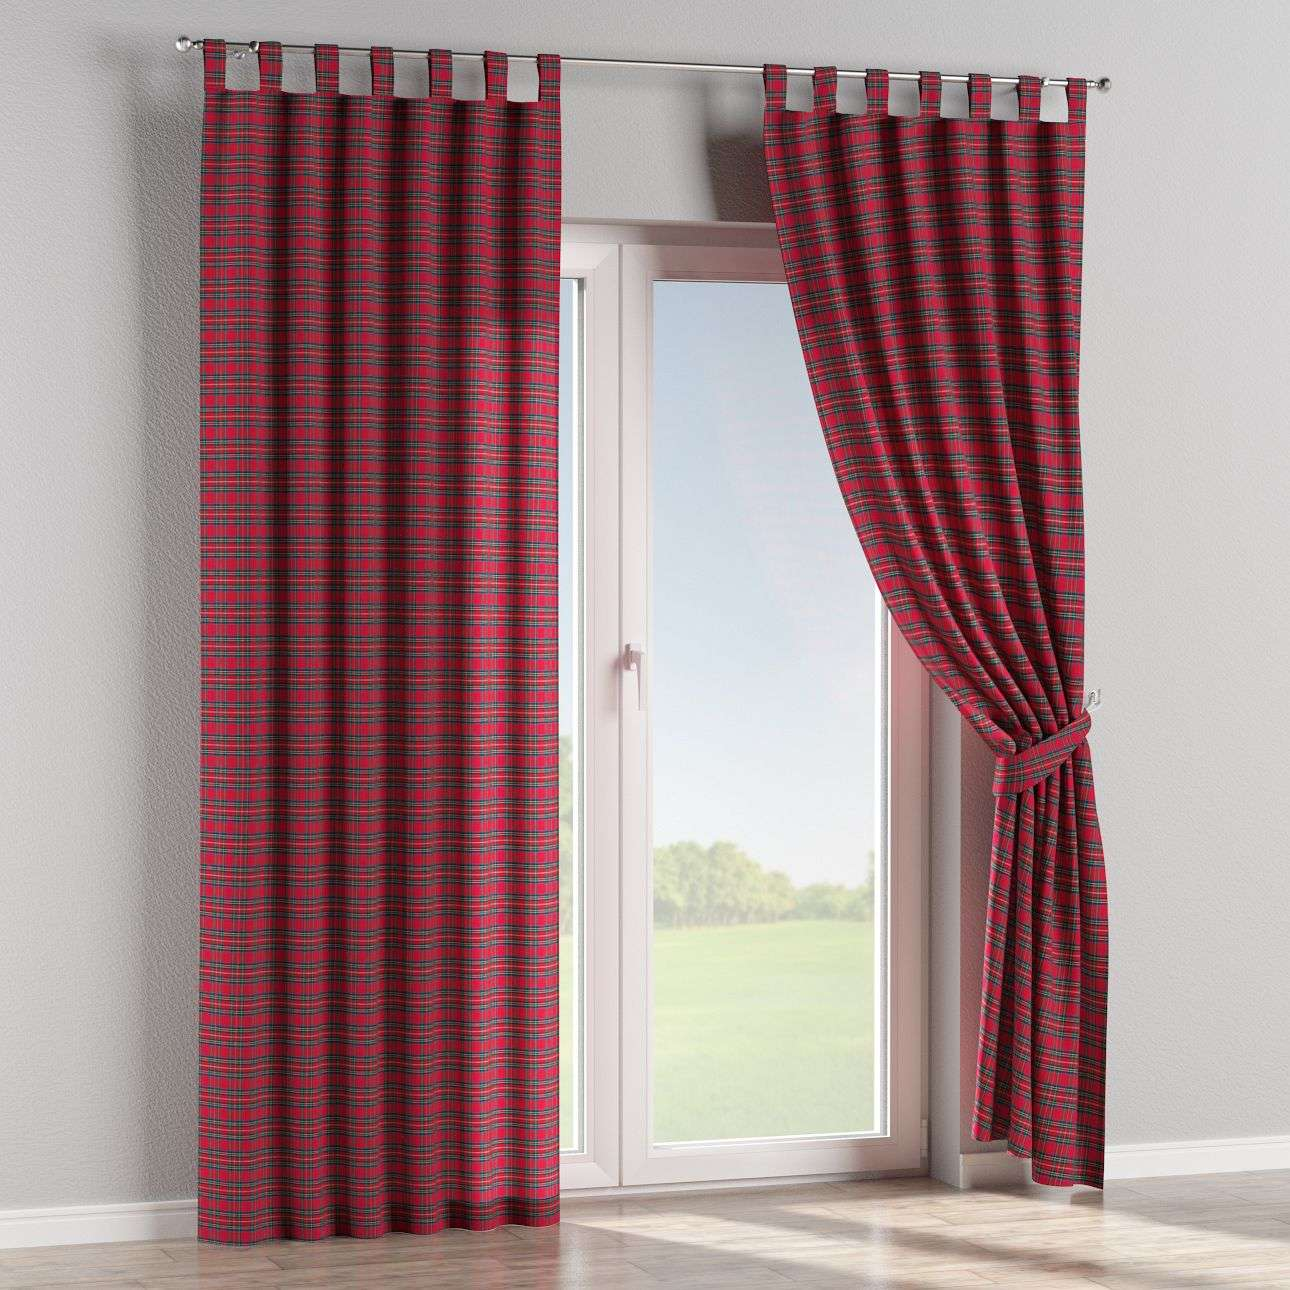 Tab top curtains 130 x 260 cm (51 x 102 inch) in collection Bristol, fabric: 126-29